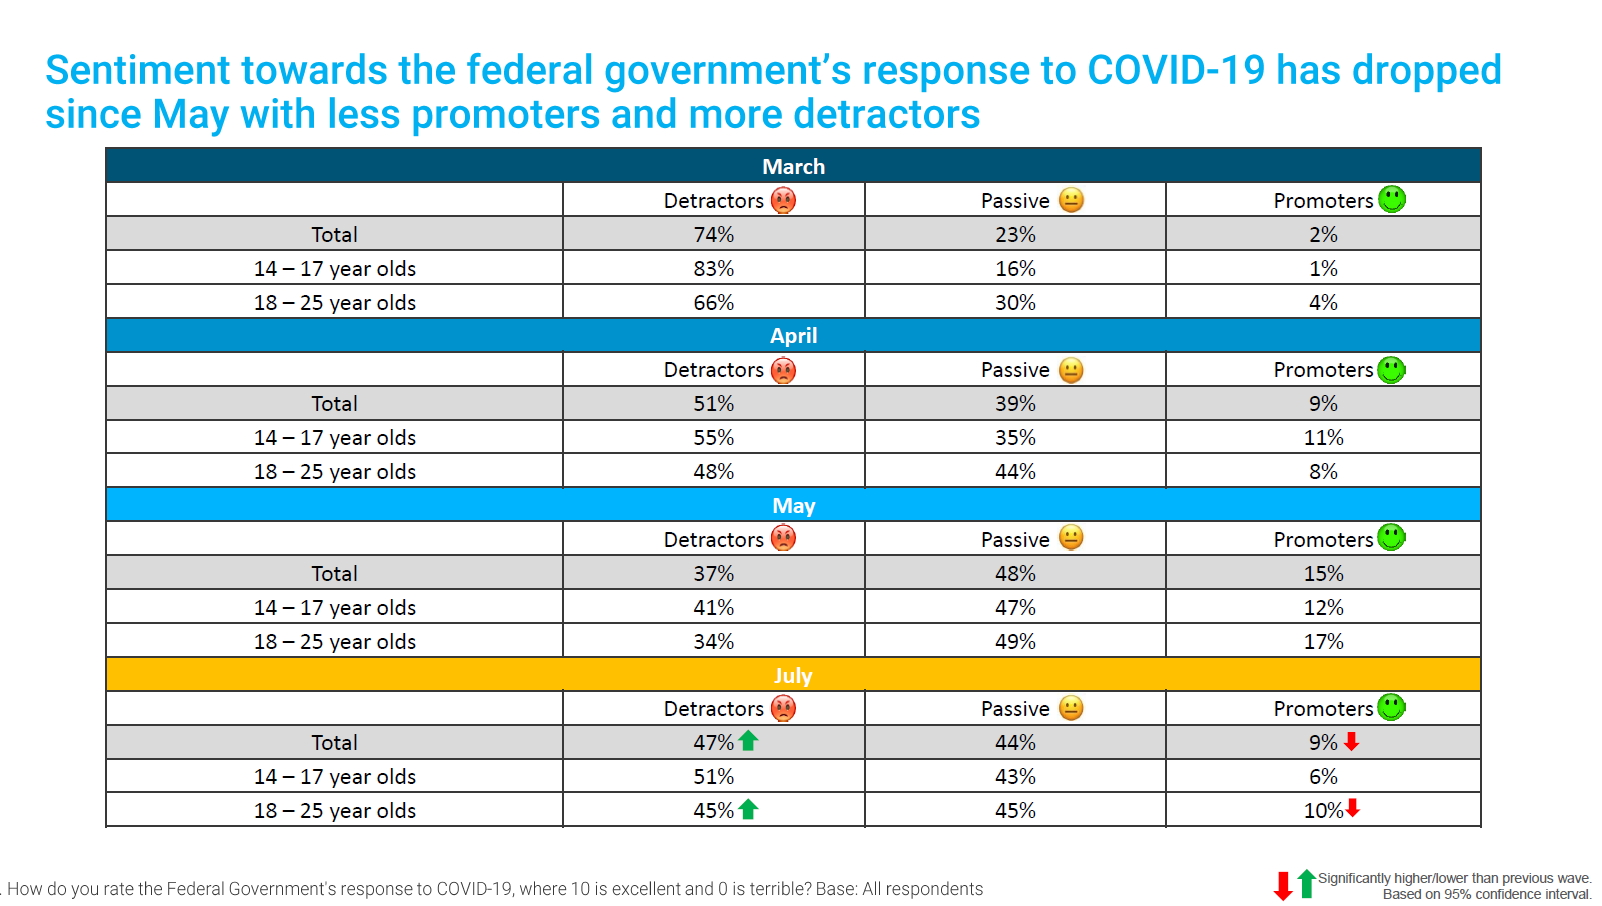 Sentiment towards the federal government's response to COVID-19 has dropped since May